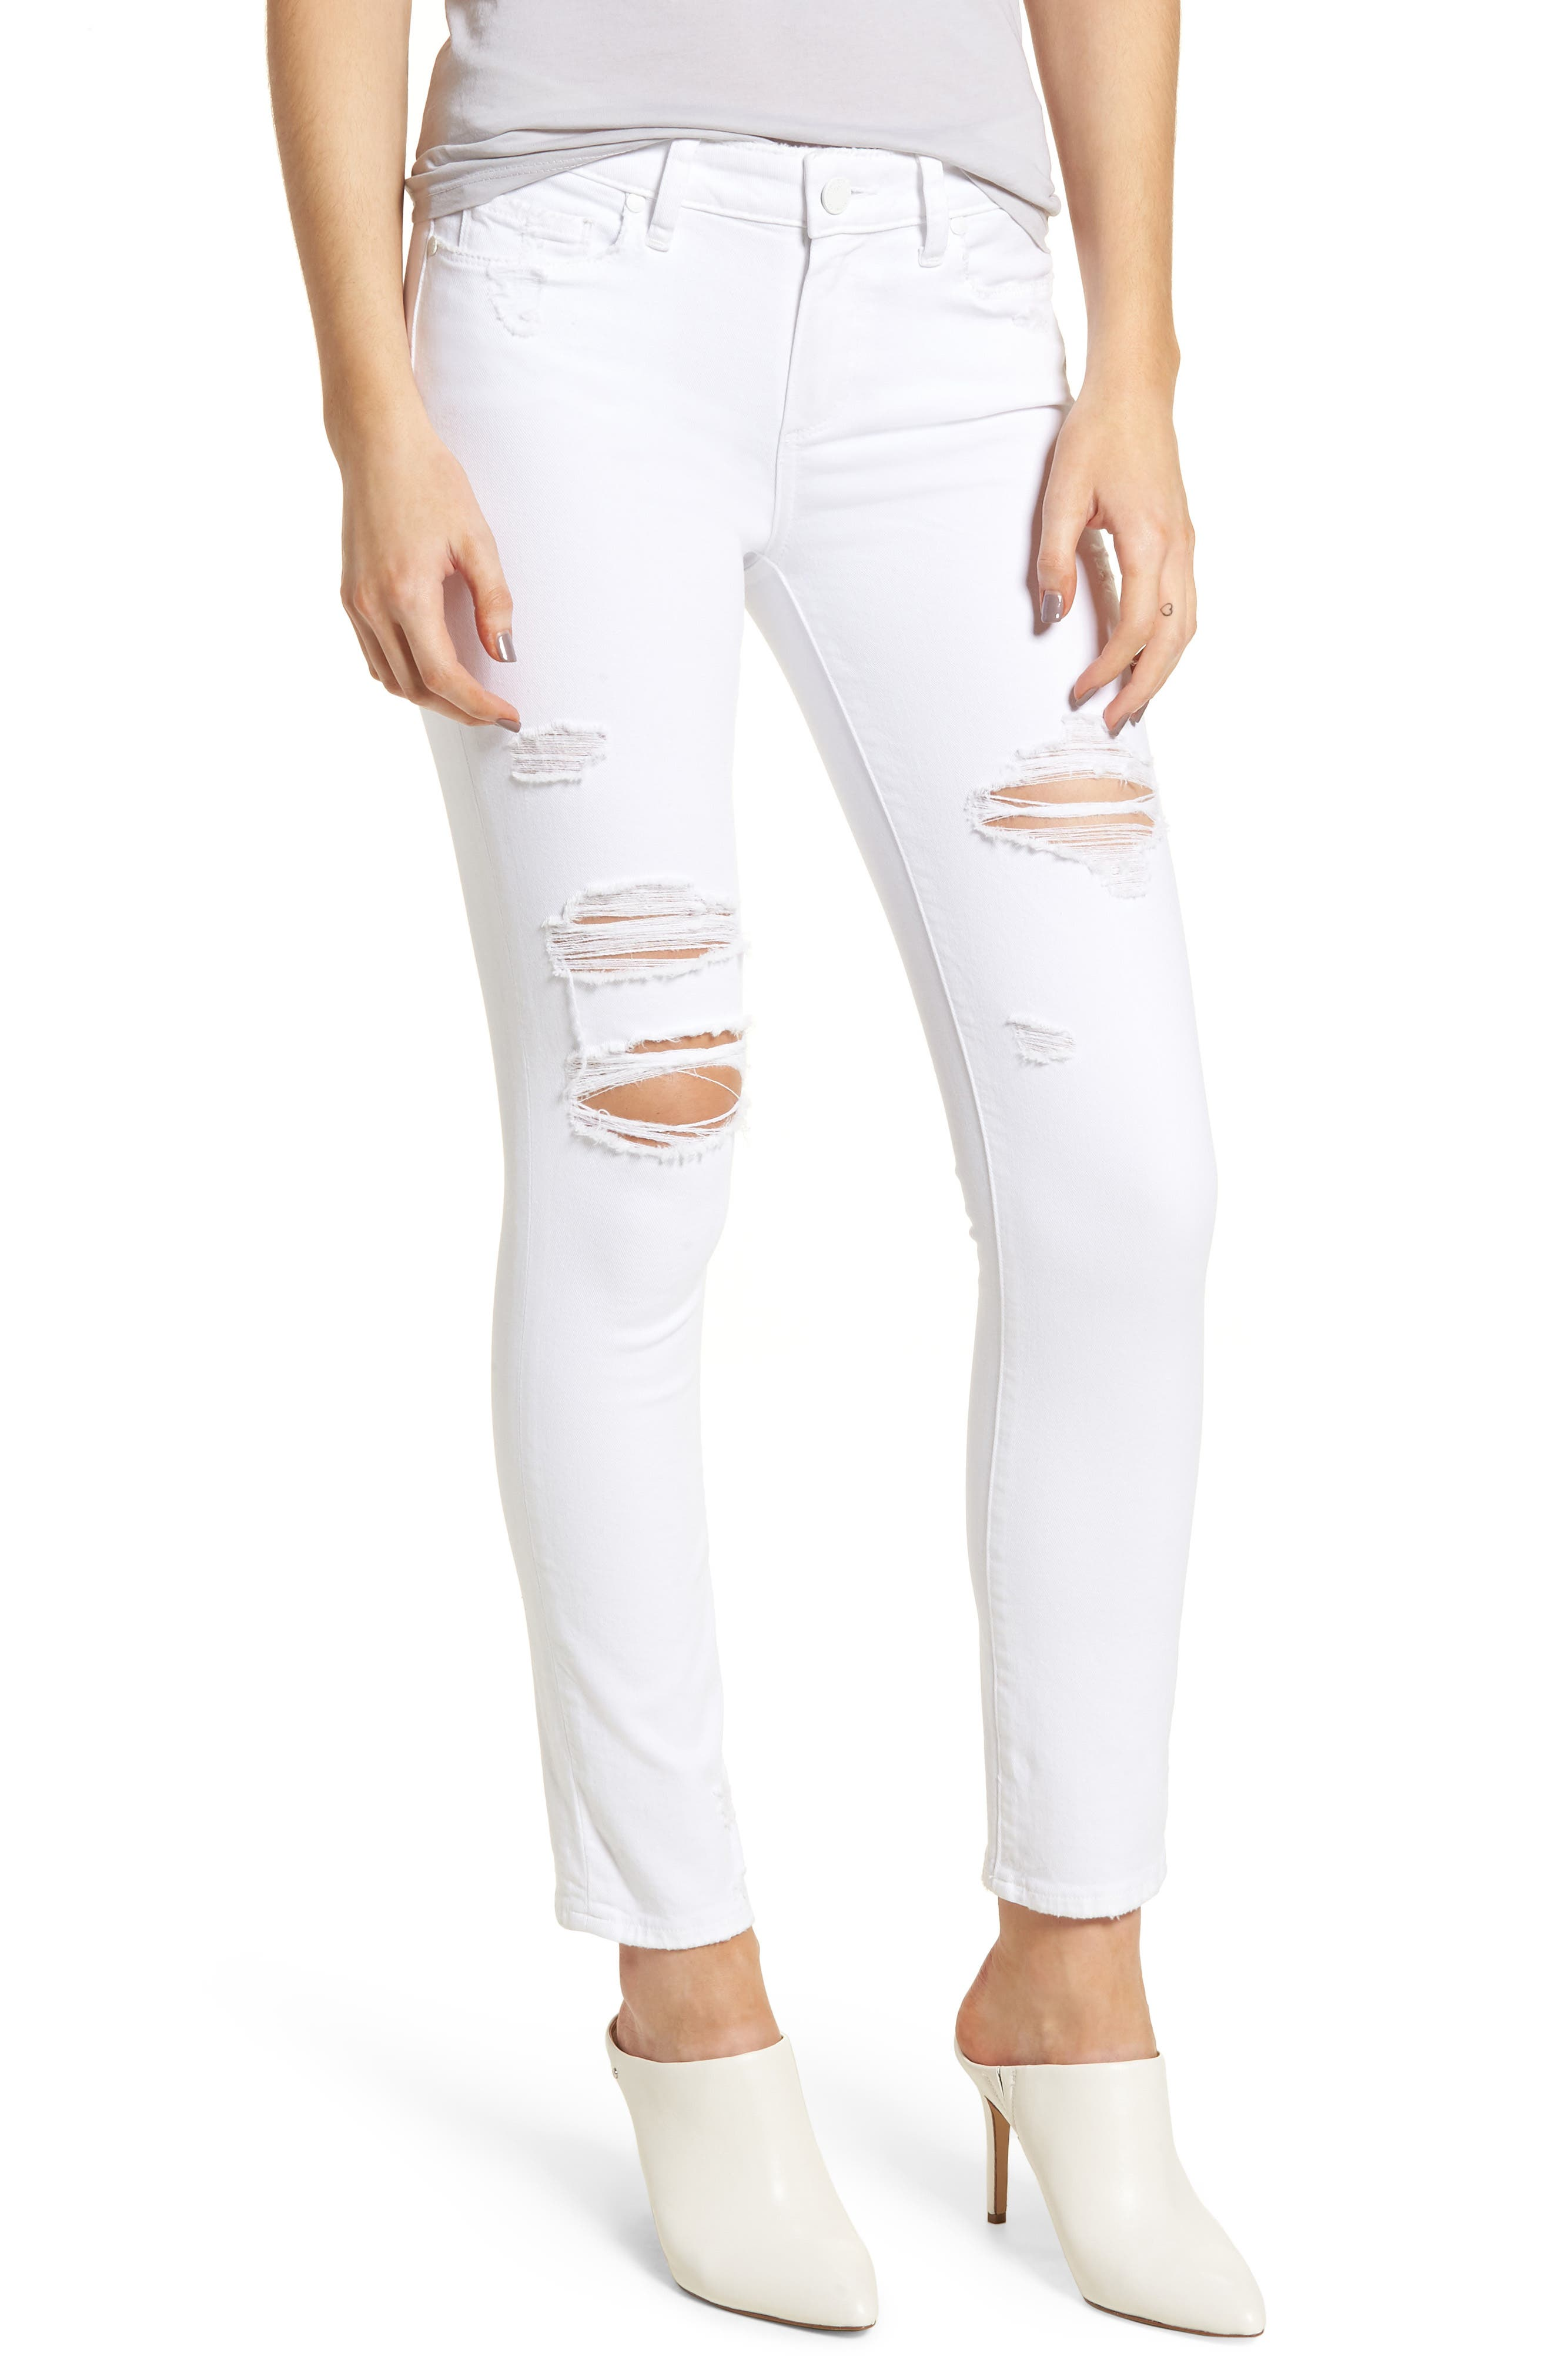 Skyline Ripped Ankle Skinny Jeans,                         Main,                         color, Bright White Destructed